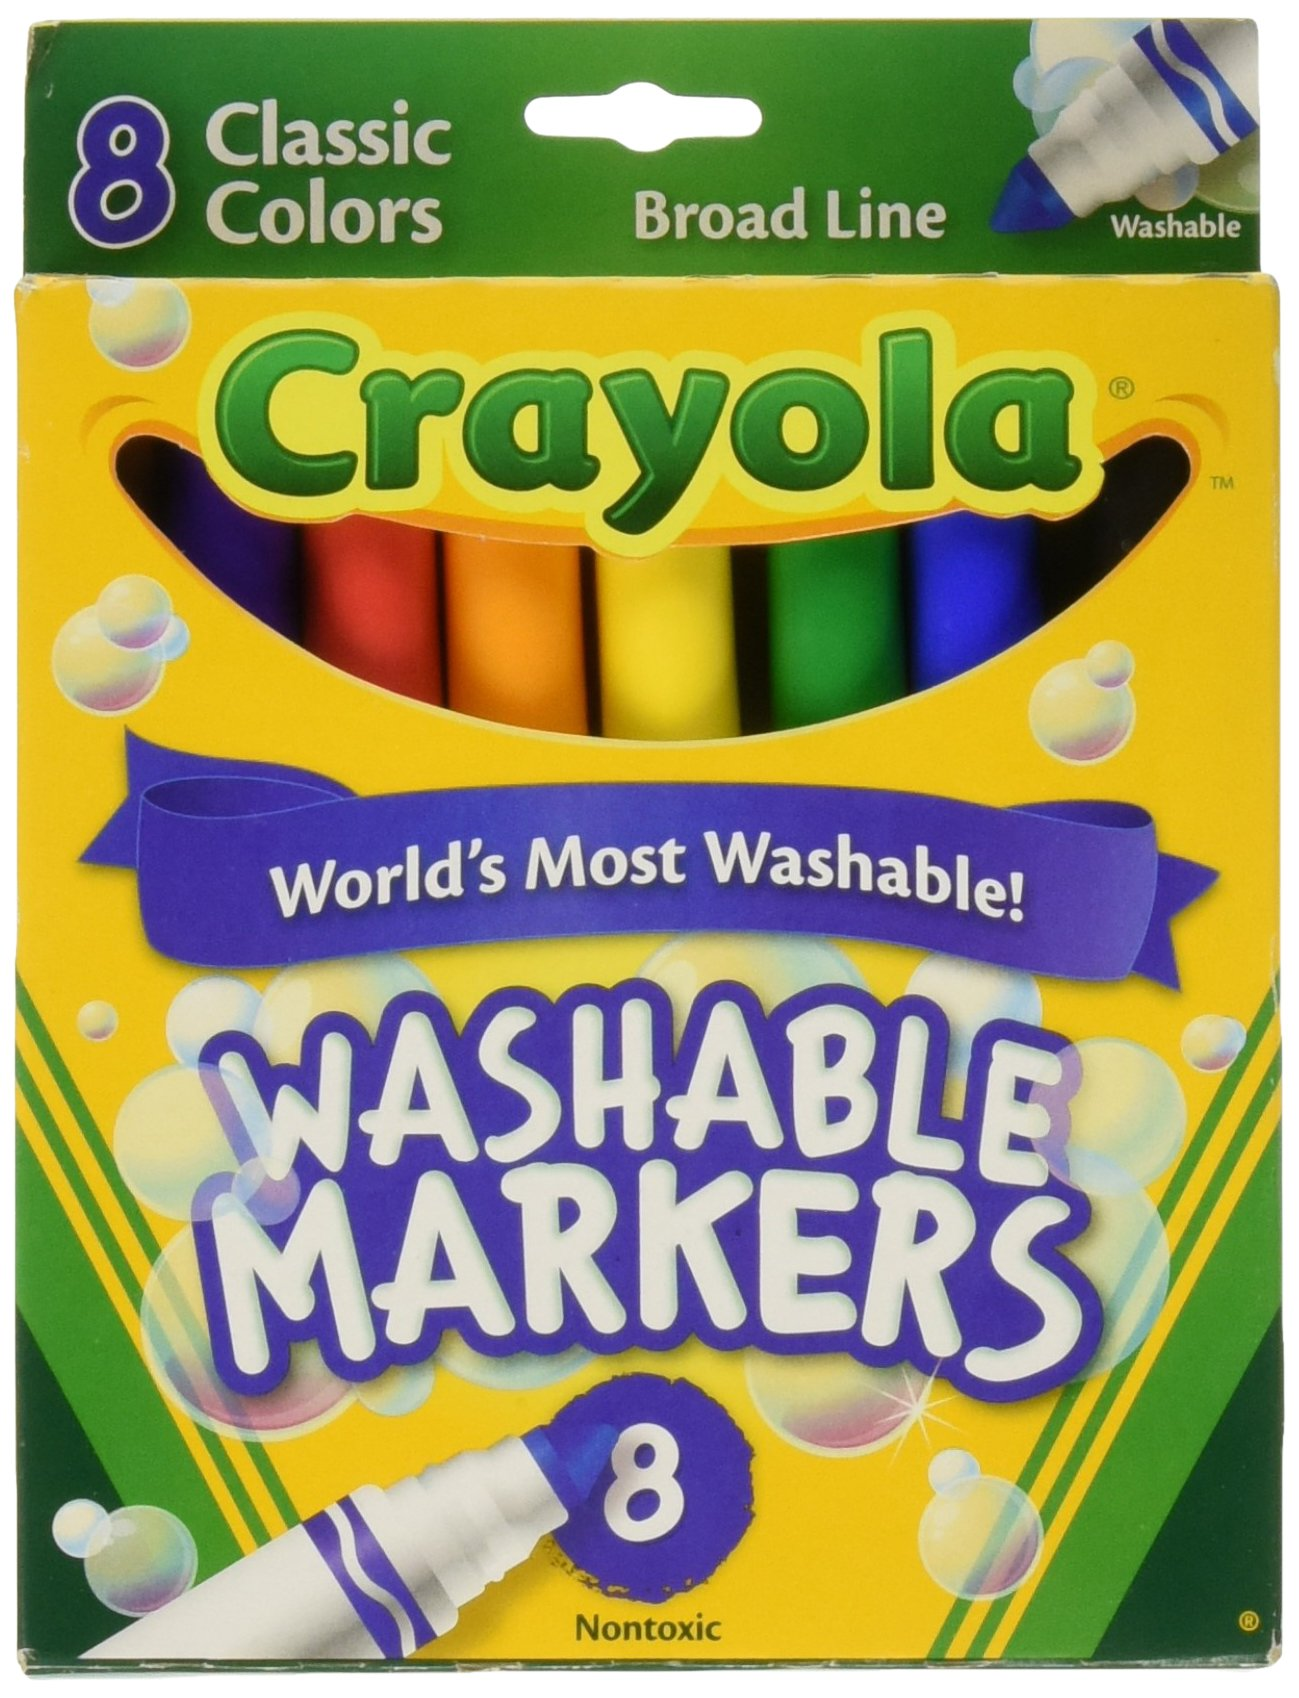 Washable Broad Line Crayola Markers